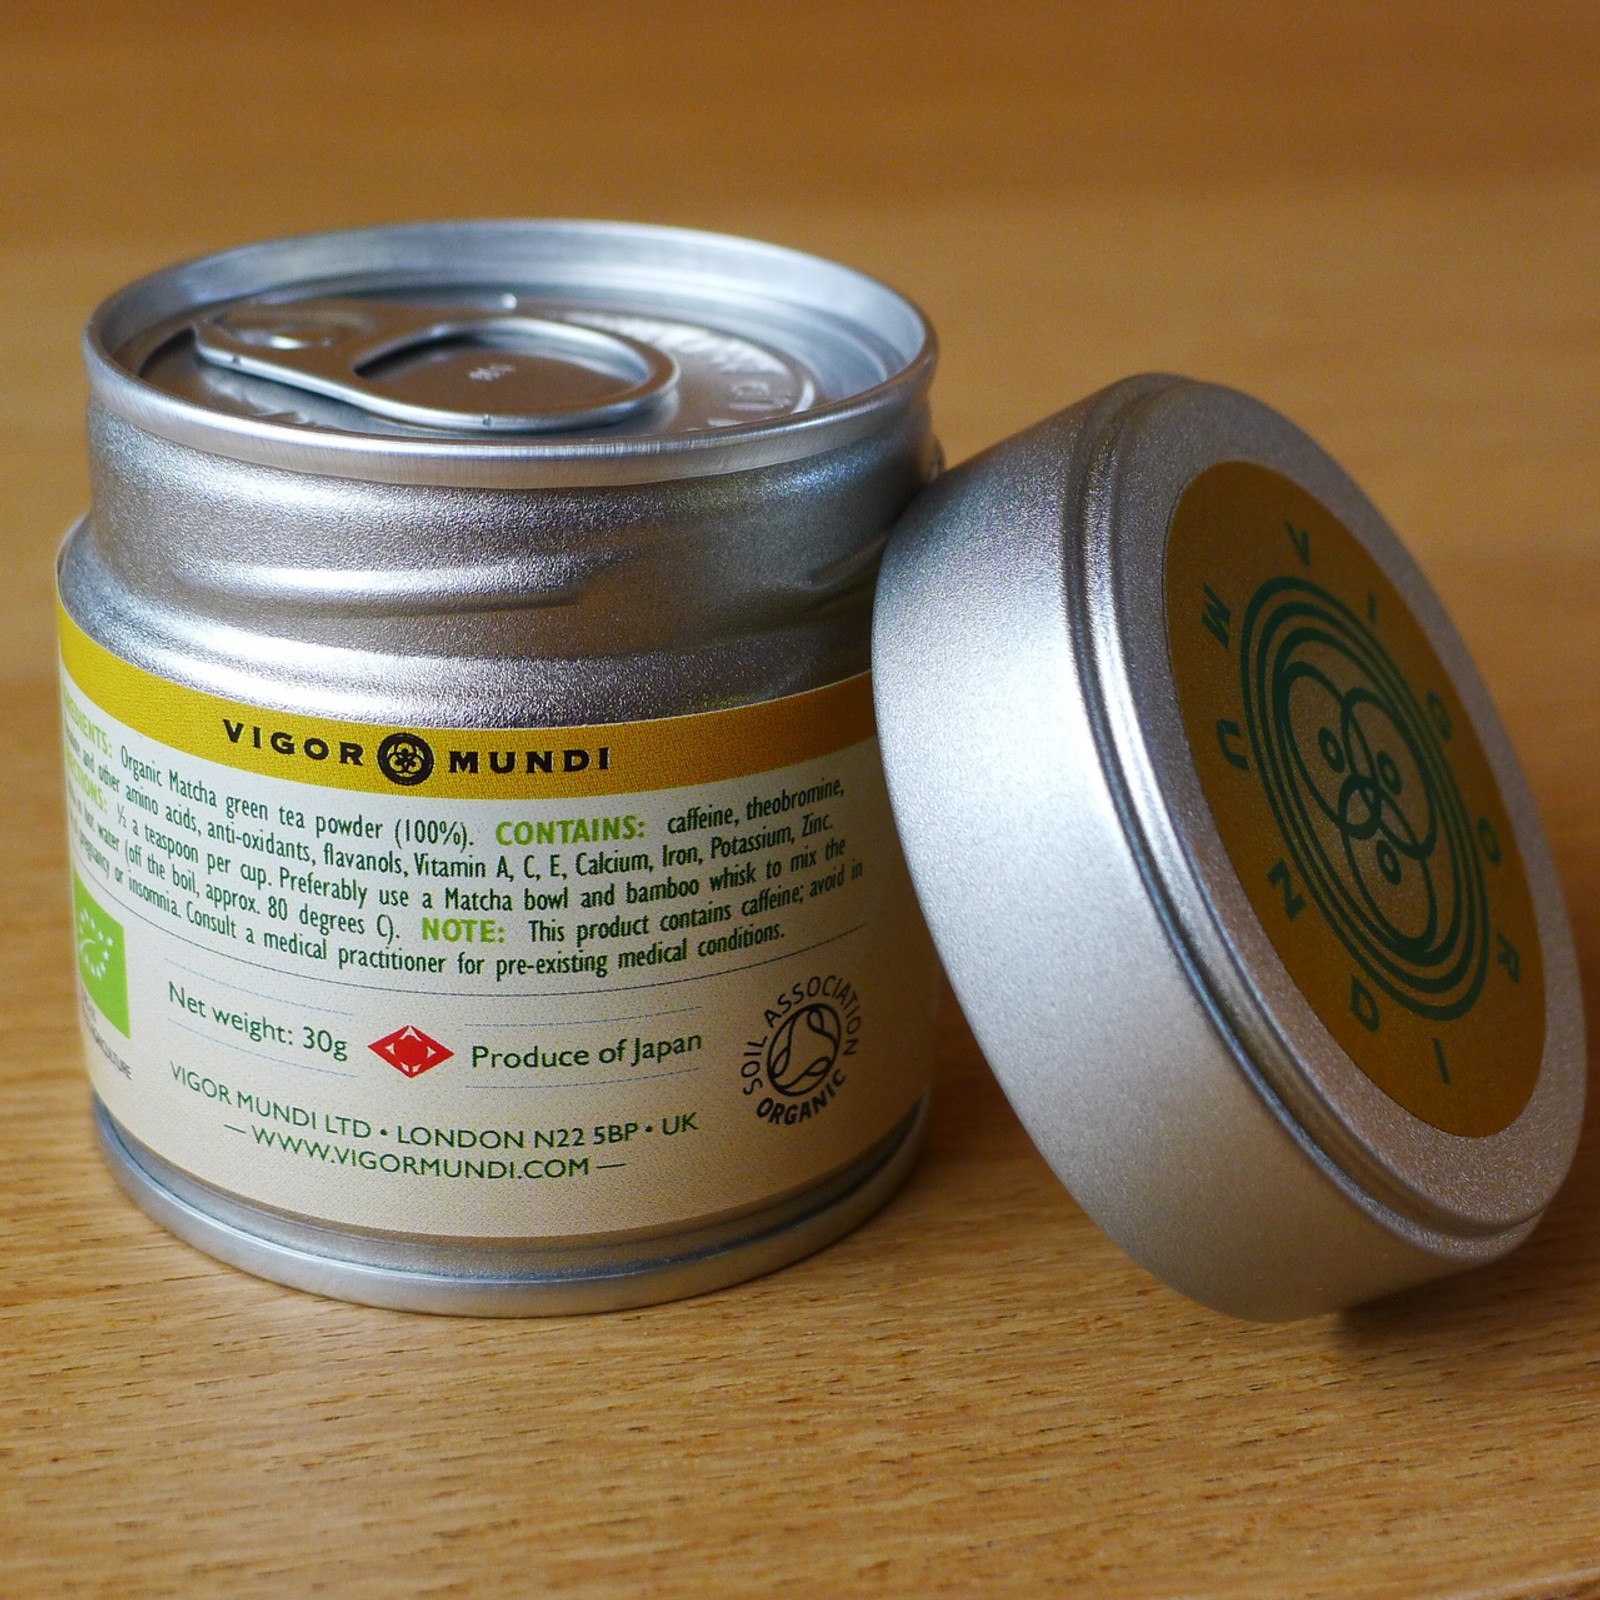 Tins are packaged and sealed at the source in Japan, to ensure freshness and quality